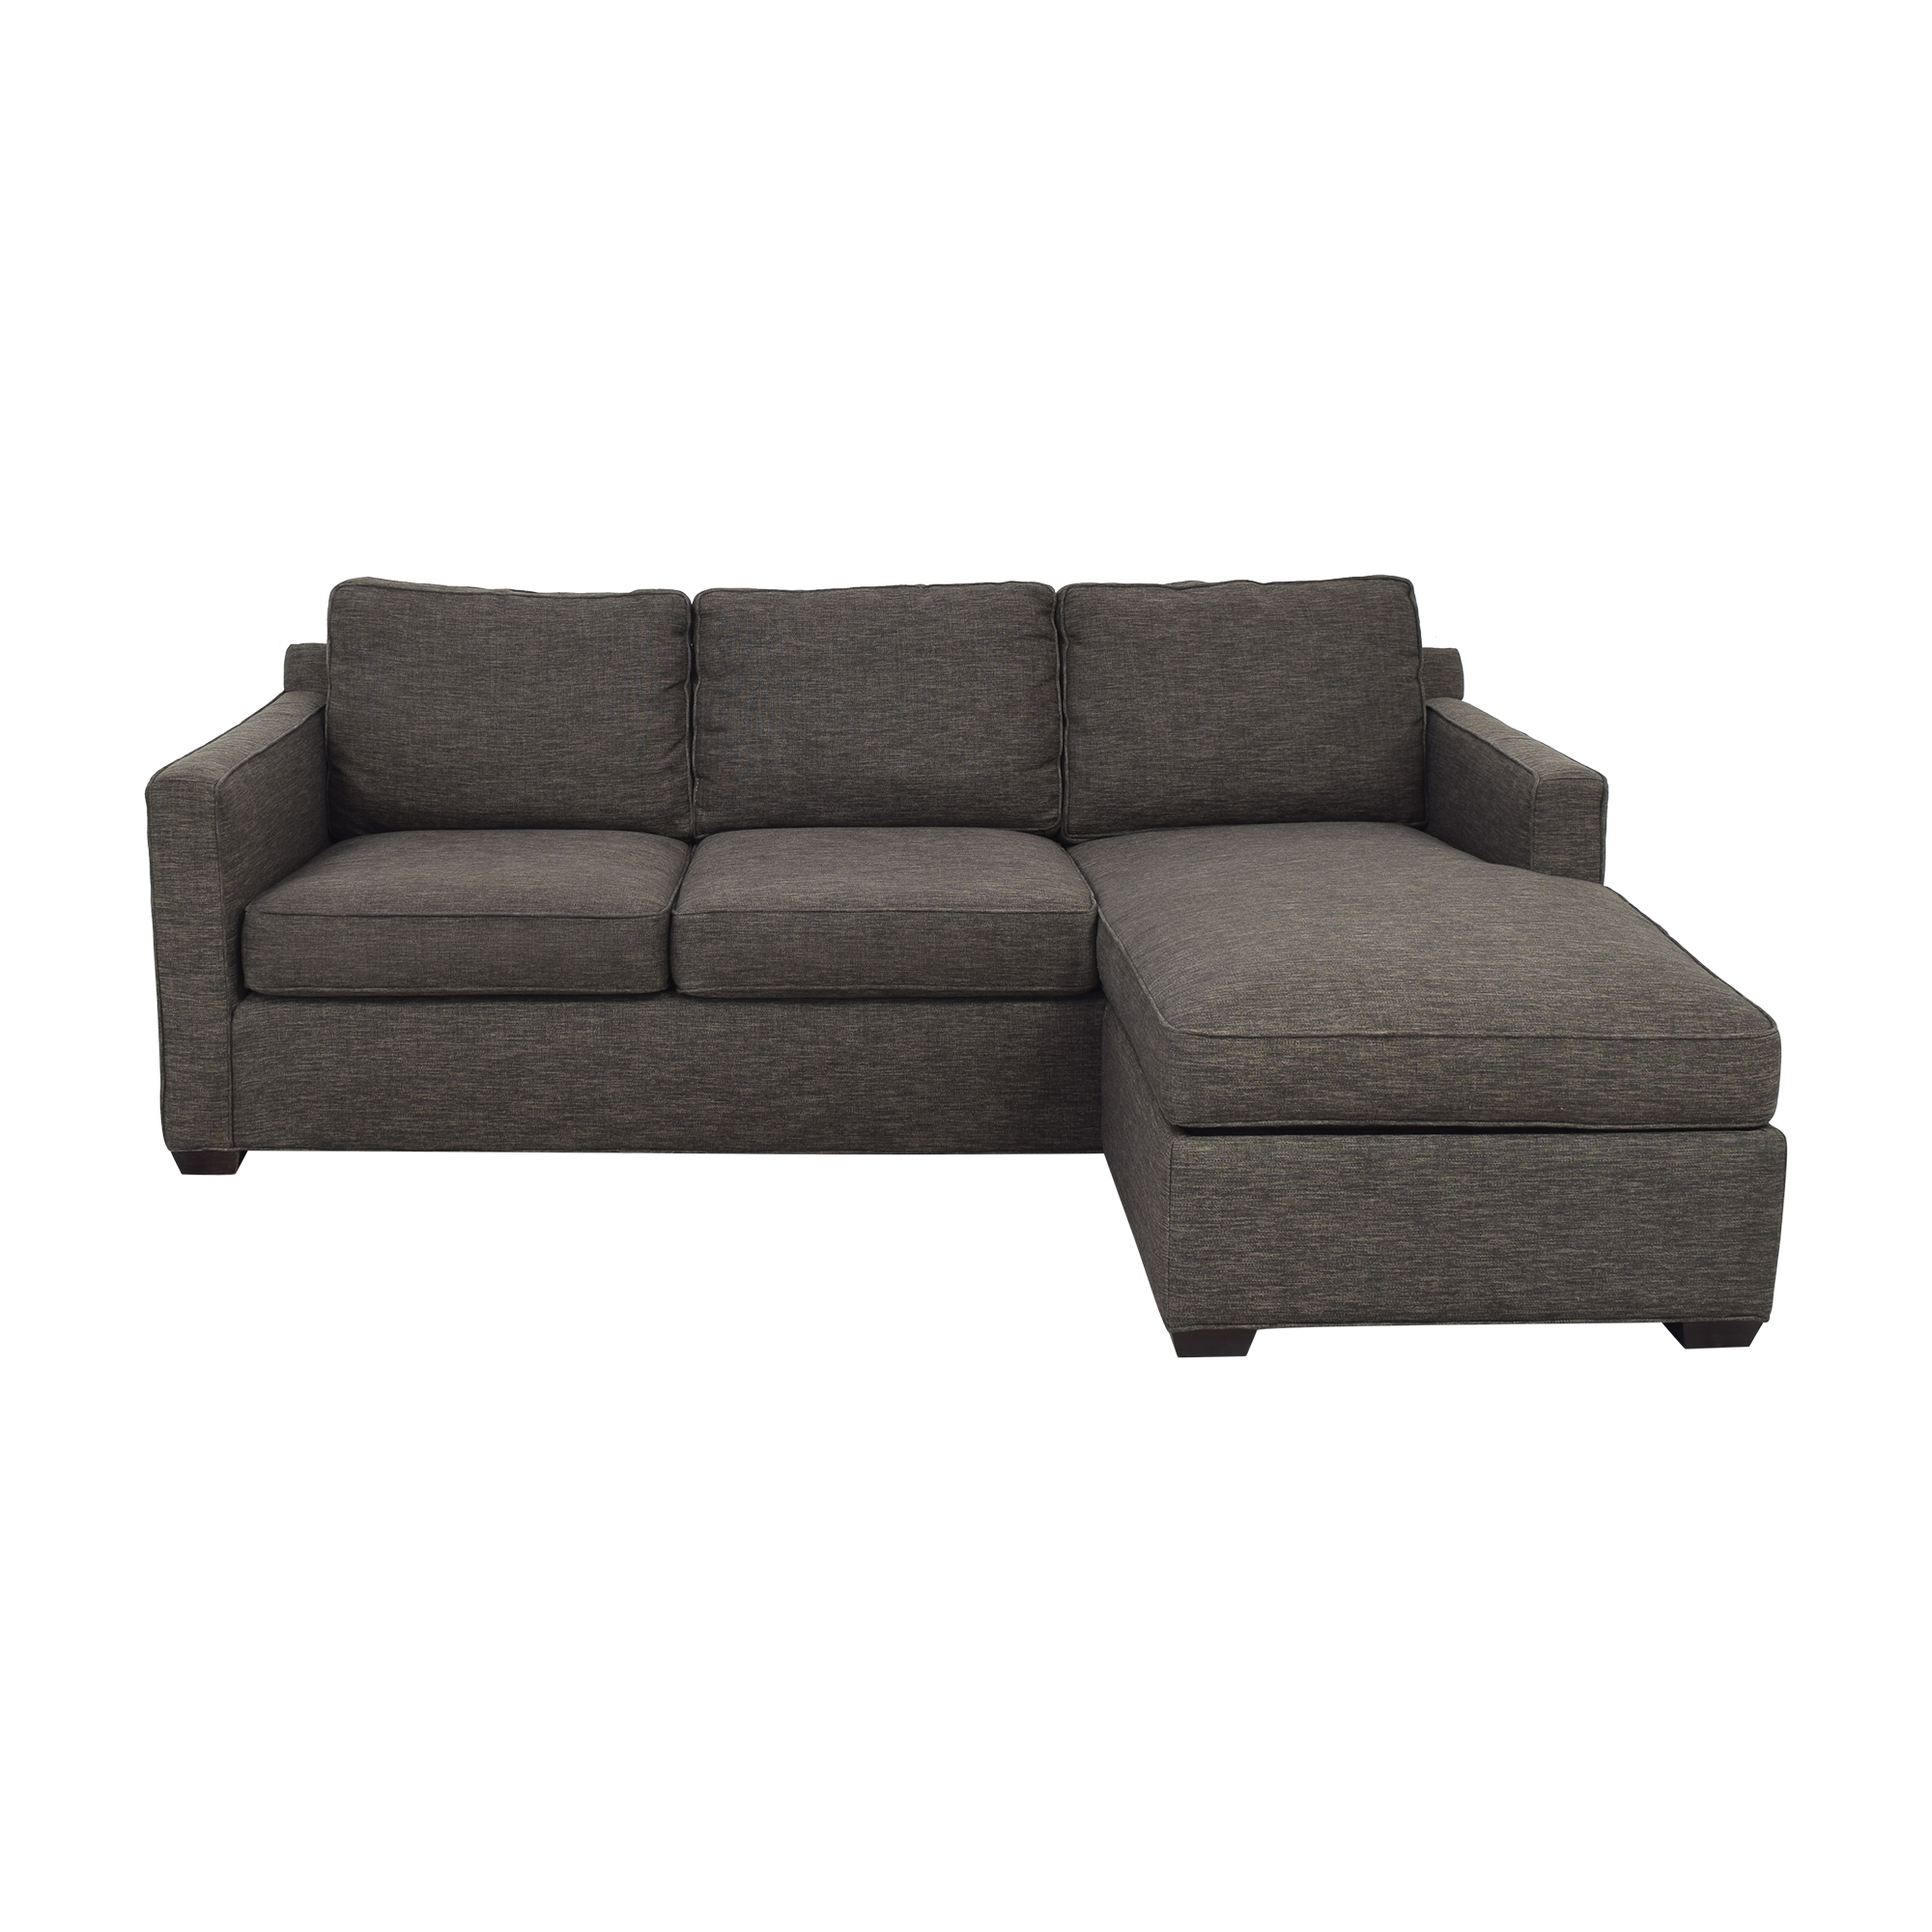 Crate & Barrel Crate & Barrel Davis Sectional Sofa ma